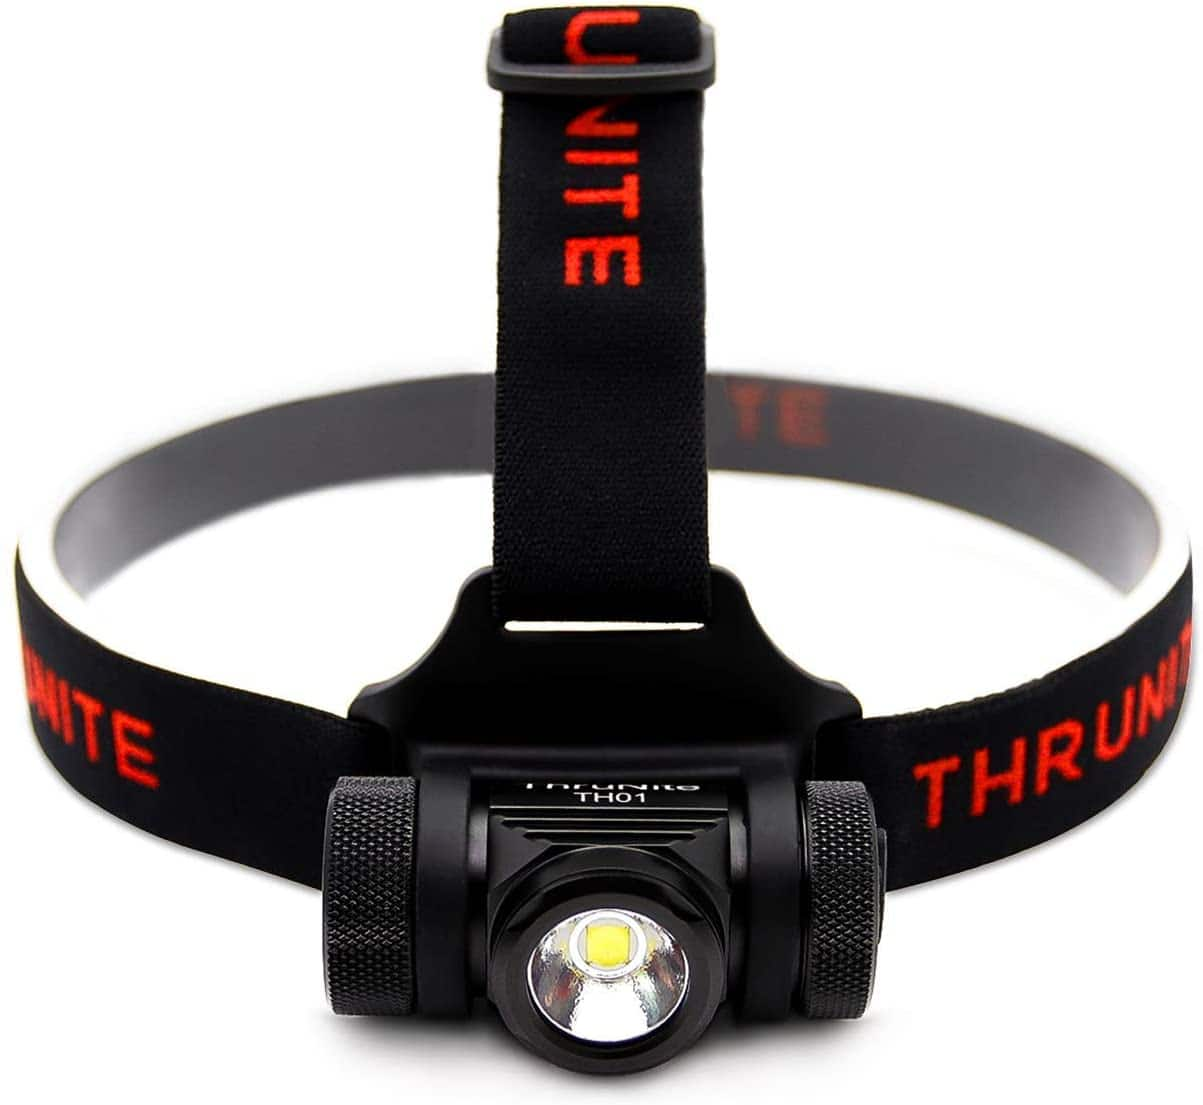 ThruNite TH01 1500 Lumen Rechargeable LED Headlamp - $29.89 (35% off)